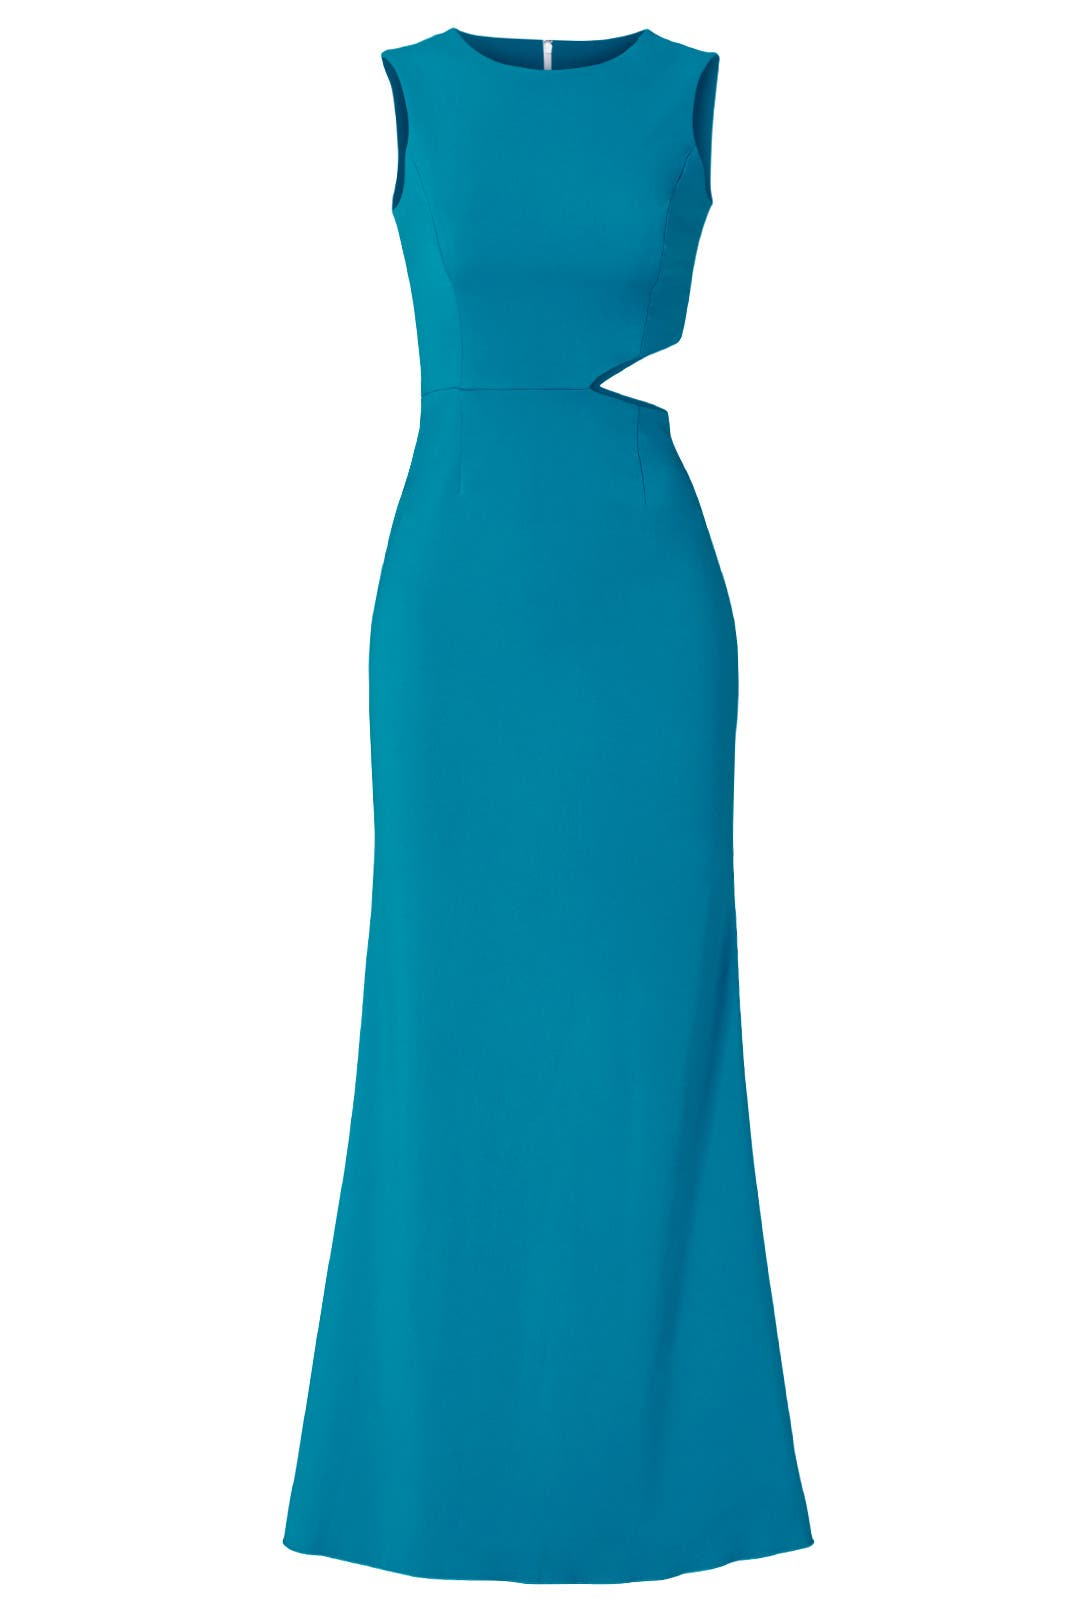 Caught in View Gown by Jay Godfrey for $113 | Rent the Runway